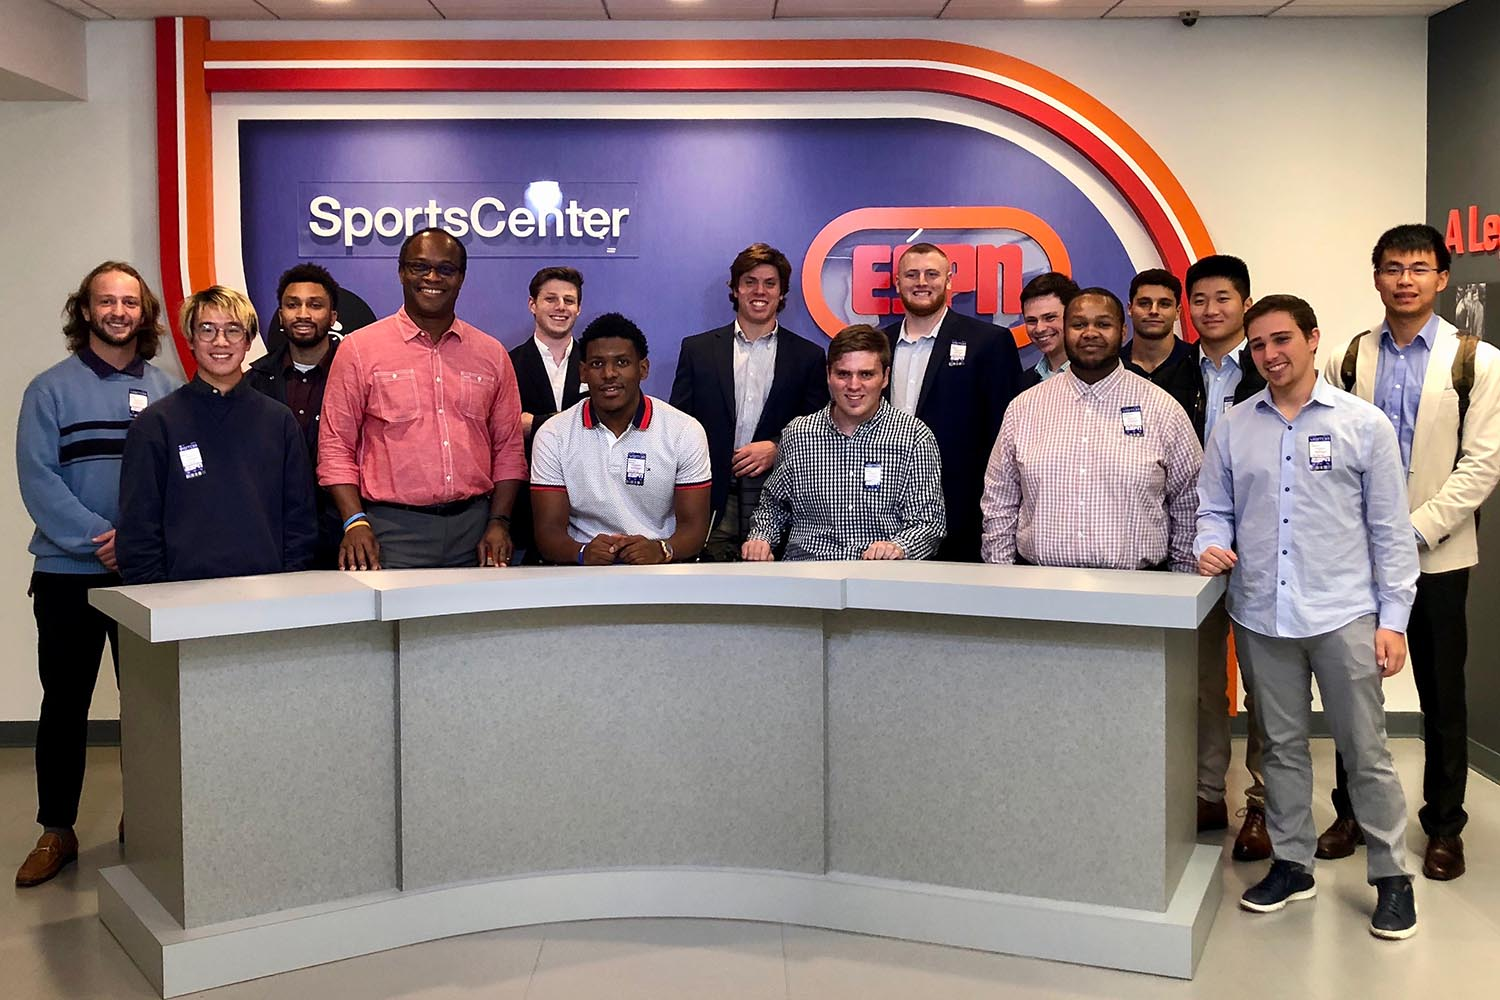 On Oct. 18, 14 students visited the ESPN campus in Bristol, Conn. Students spent time with Rob King '84 hearing about his career in journalism and viewing some of his current video projects and participating in a full studio tour including watching the taping of segments for SportsCenter.